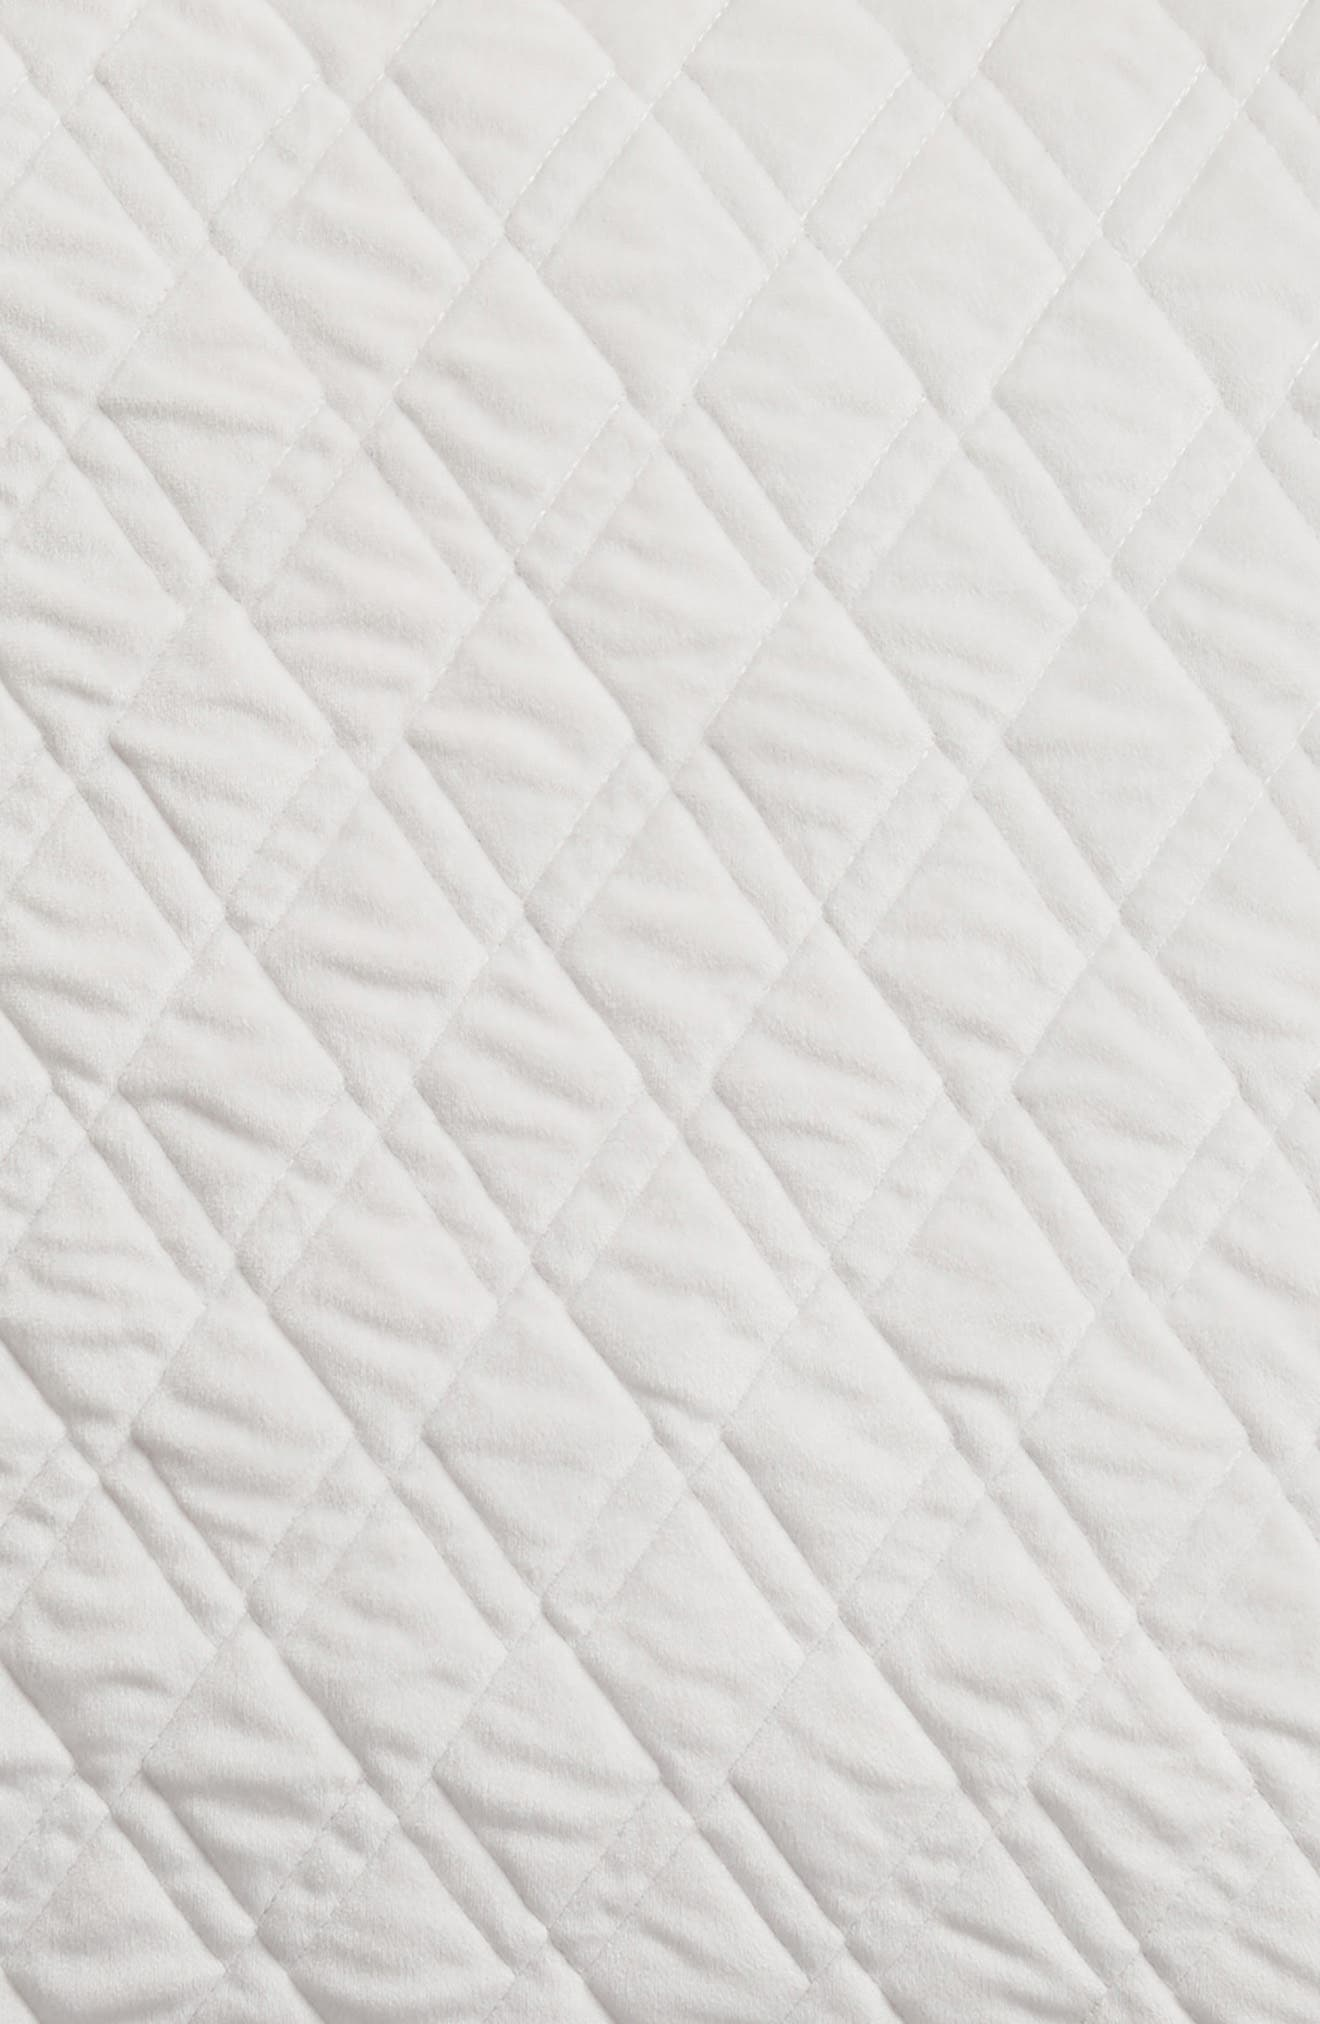 Karlina Quilted Euro Sham,                             Alternate thumbnail 3, color,                             GREY VAPOR